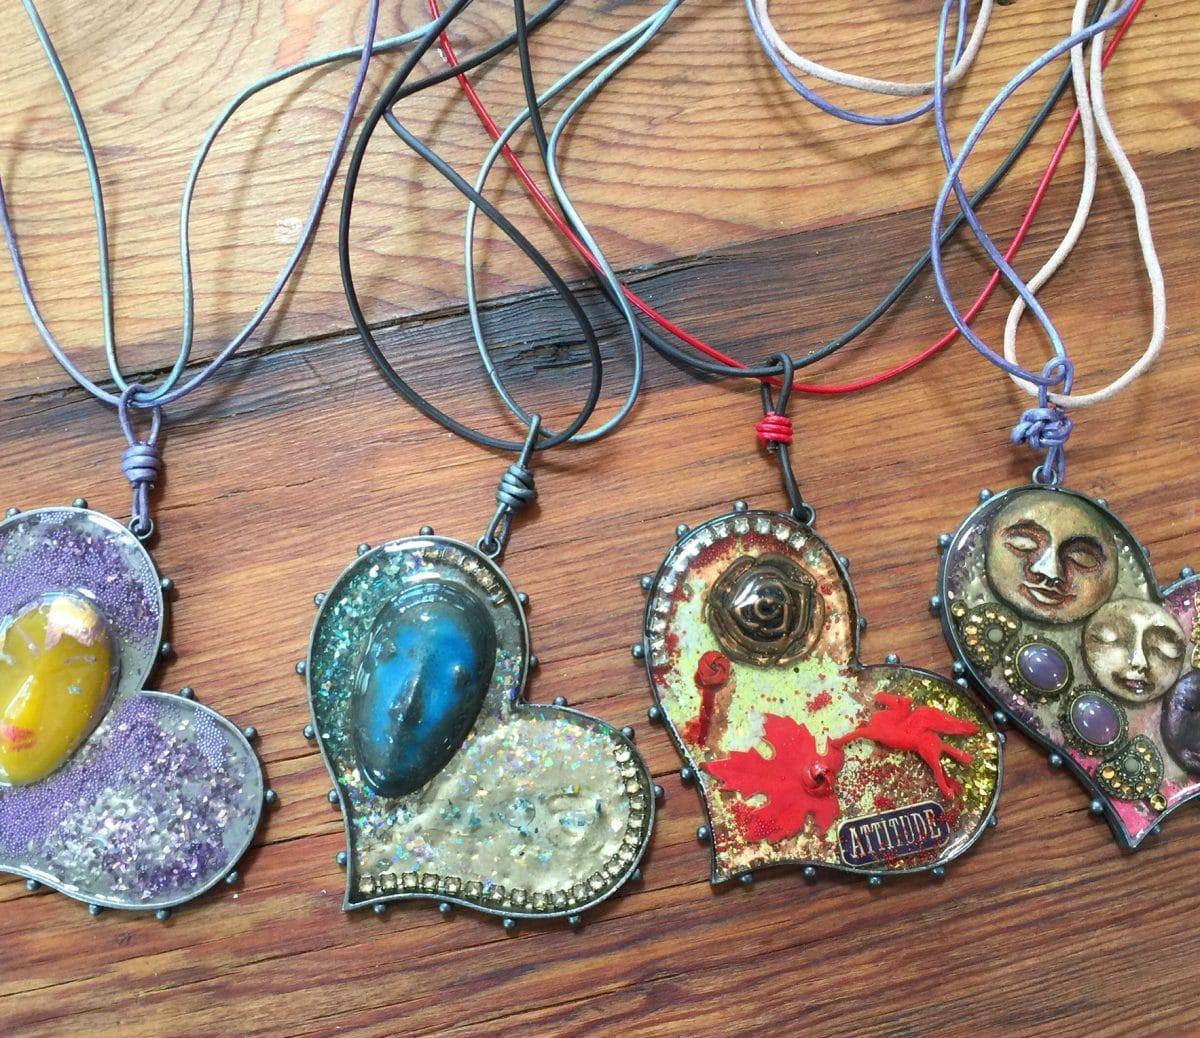 These Faces Showcase The Leather Jewelry And Ice Resin Of Mary Ellen Beads Albuquerque